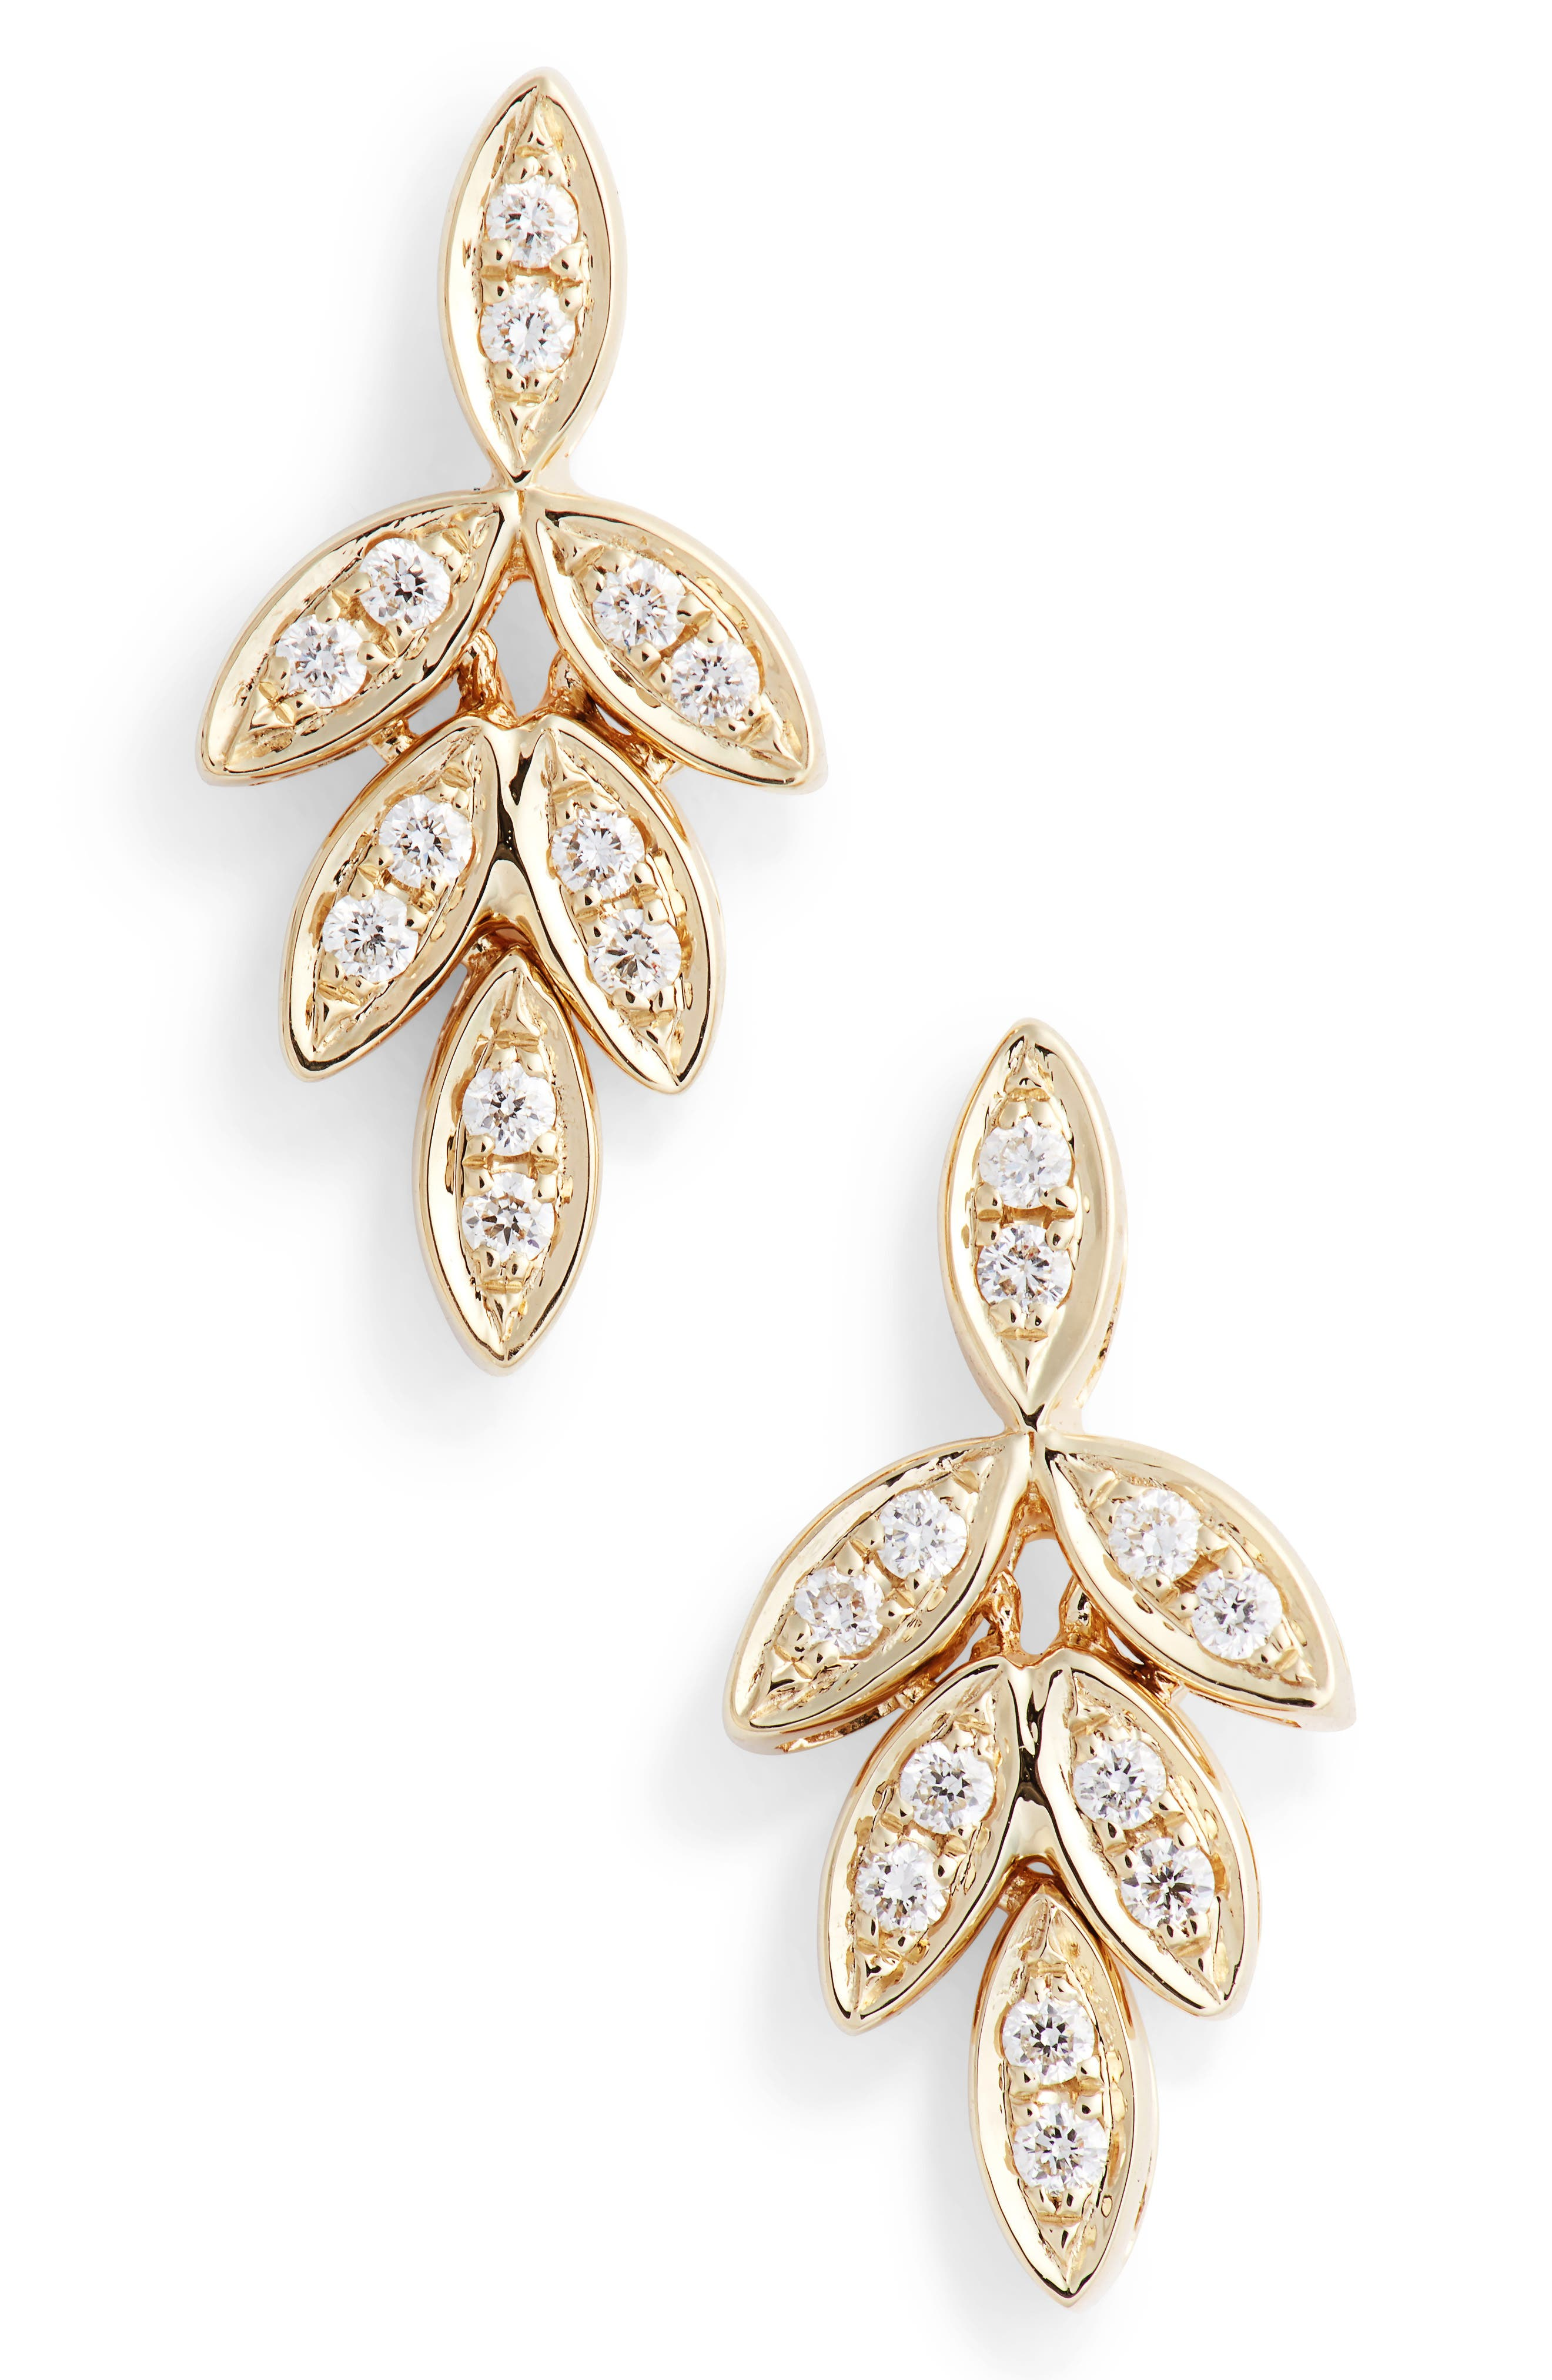 Dana Rebecca Lori Paige Diamond Leaf Stud Earrings, Main, color, 710